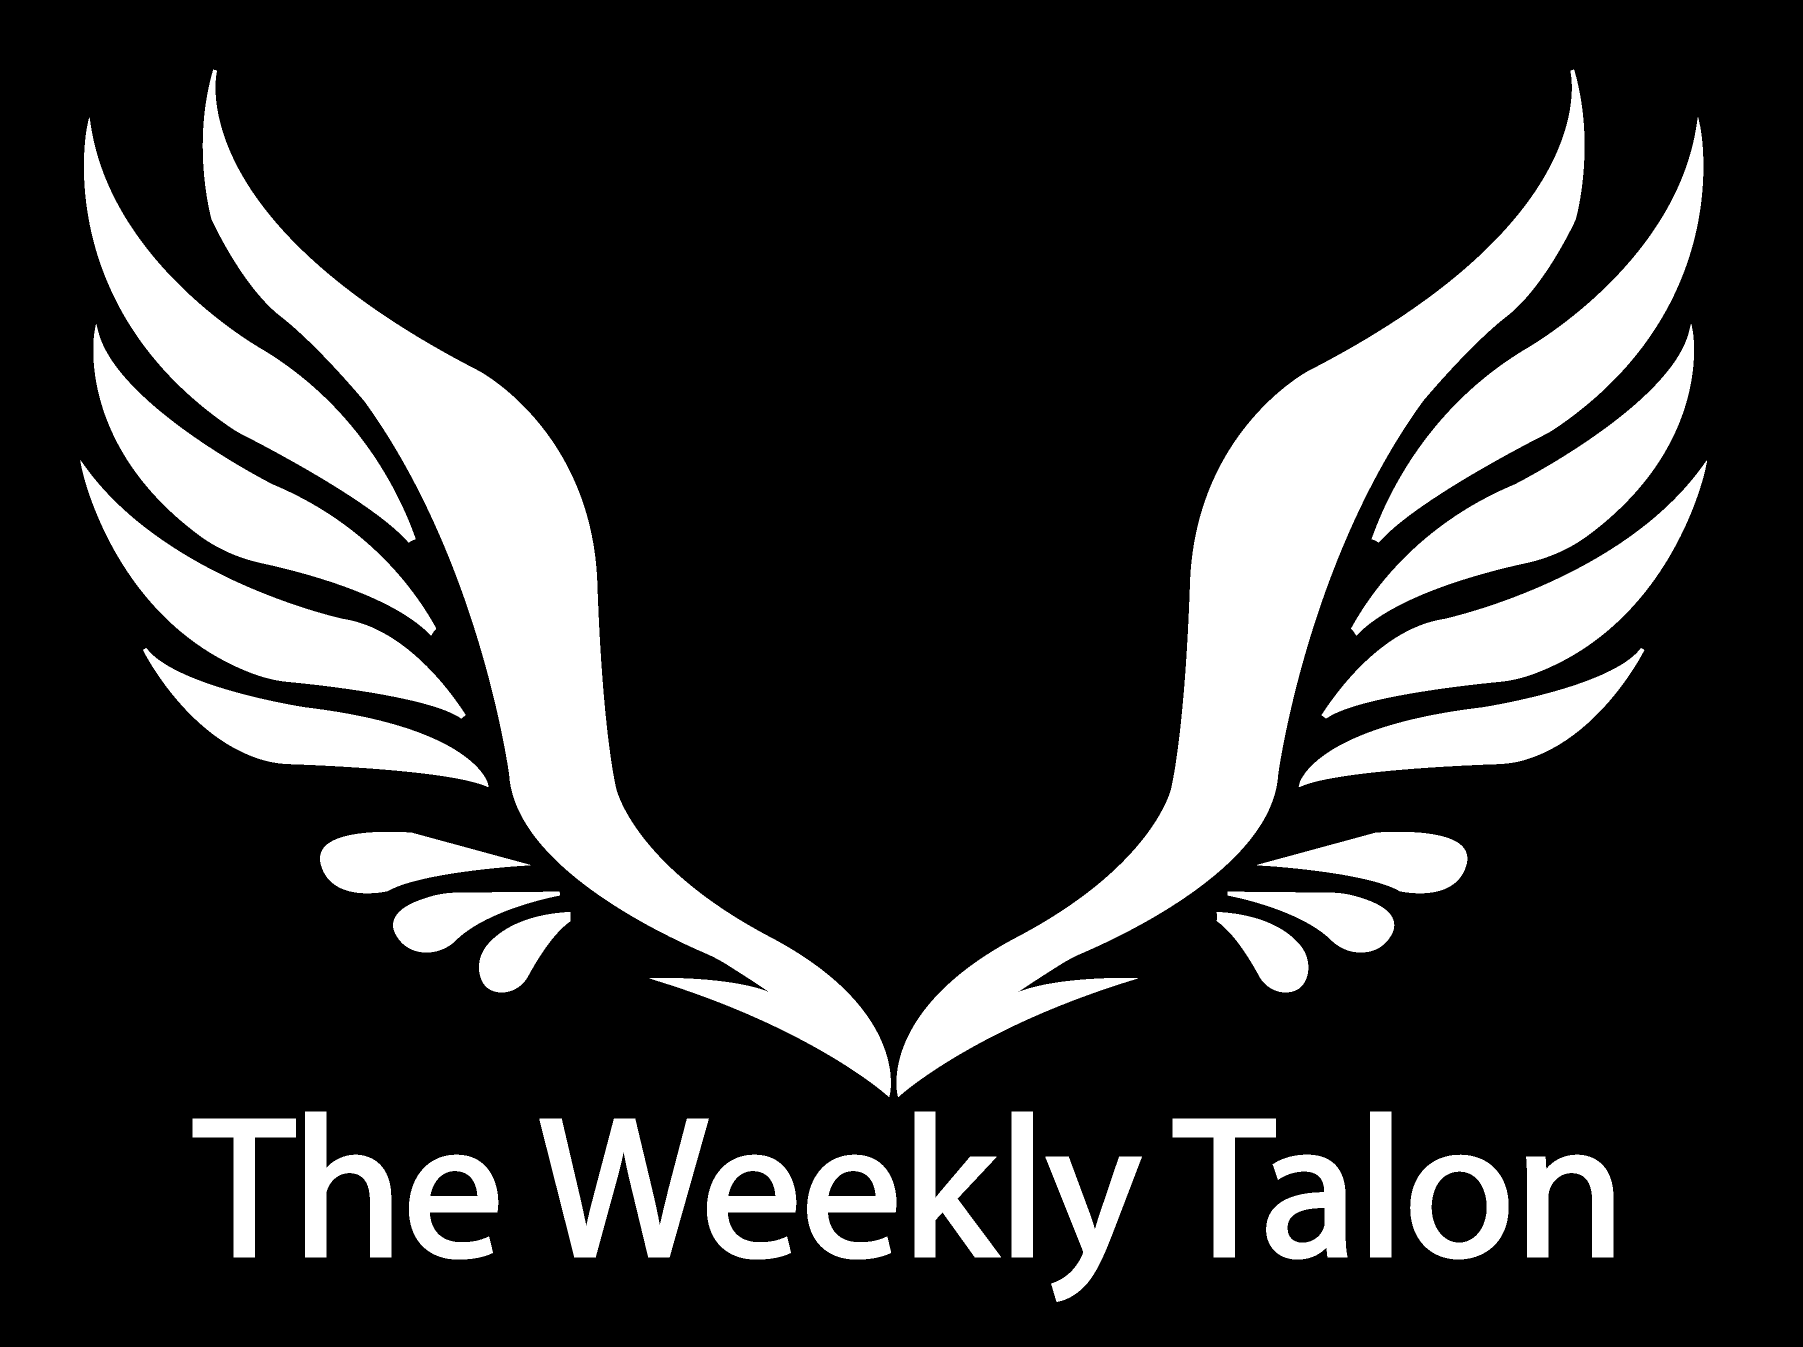 The Weekly Talon